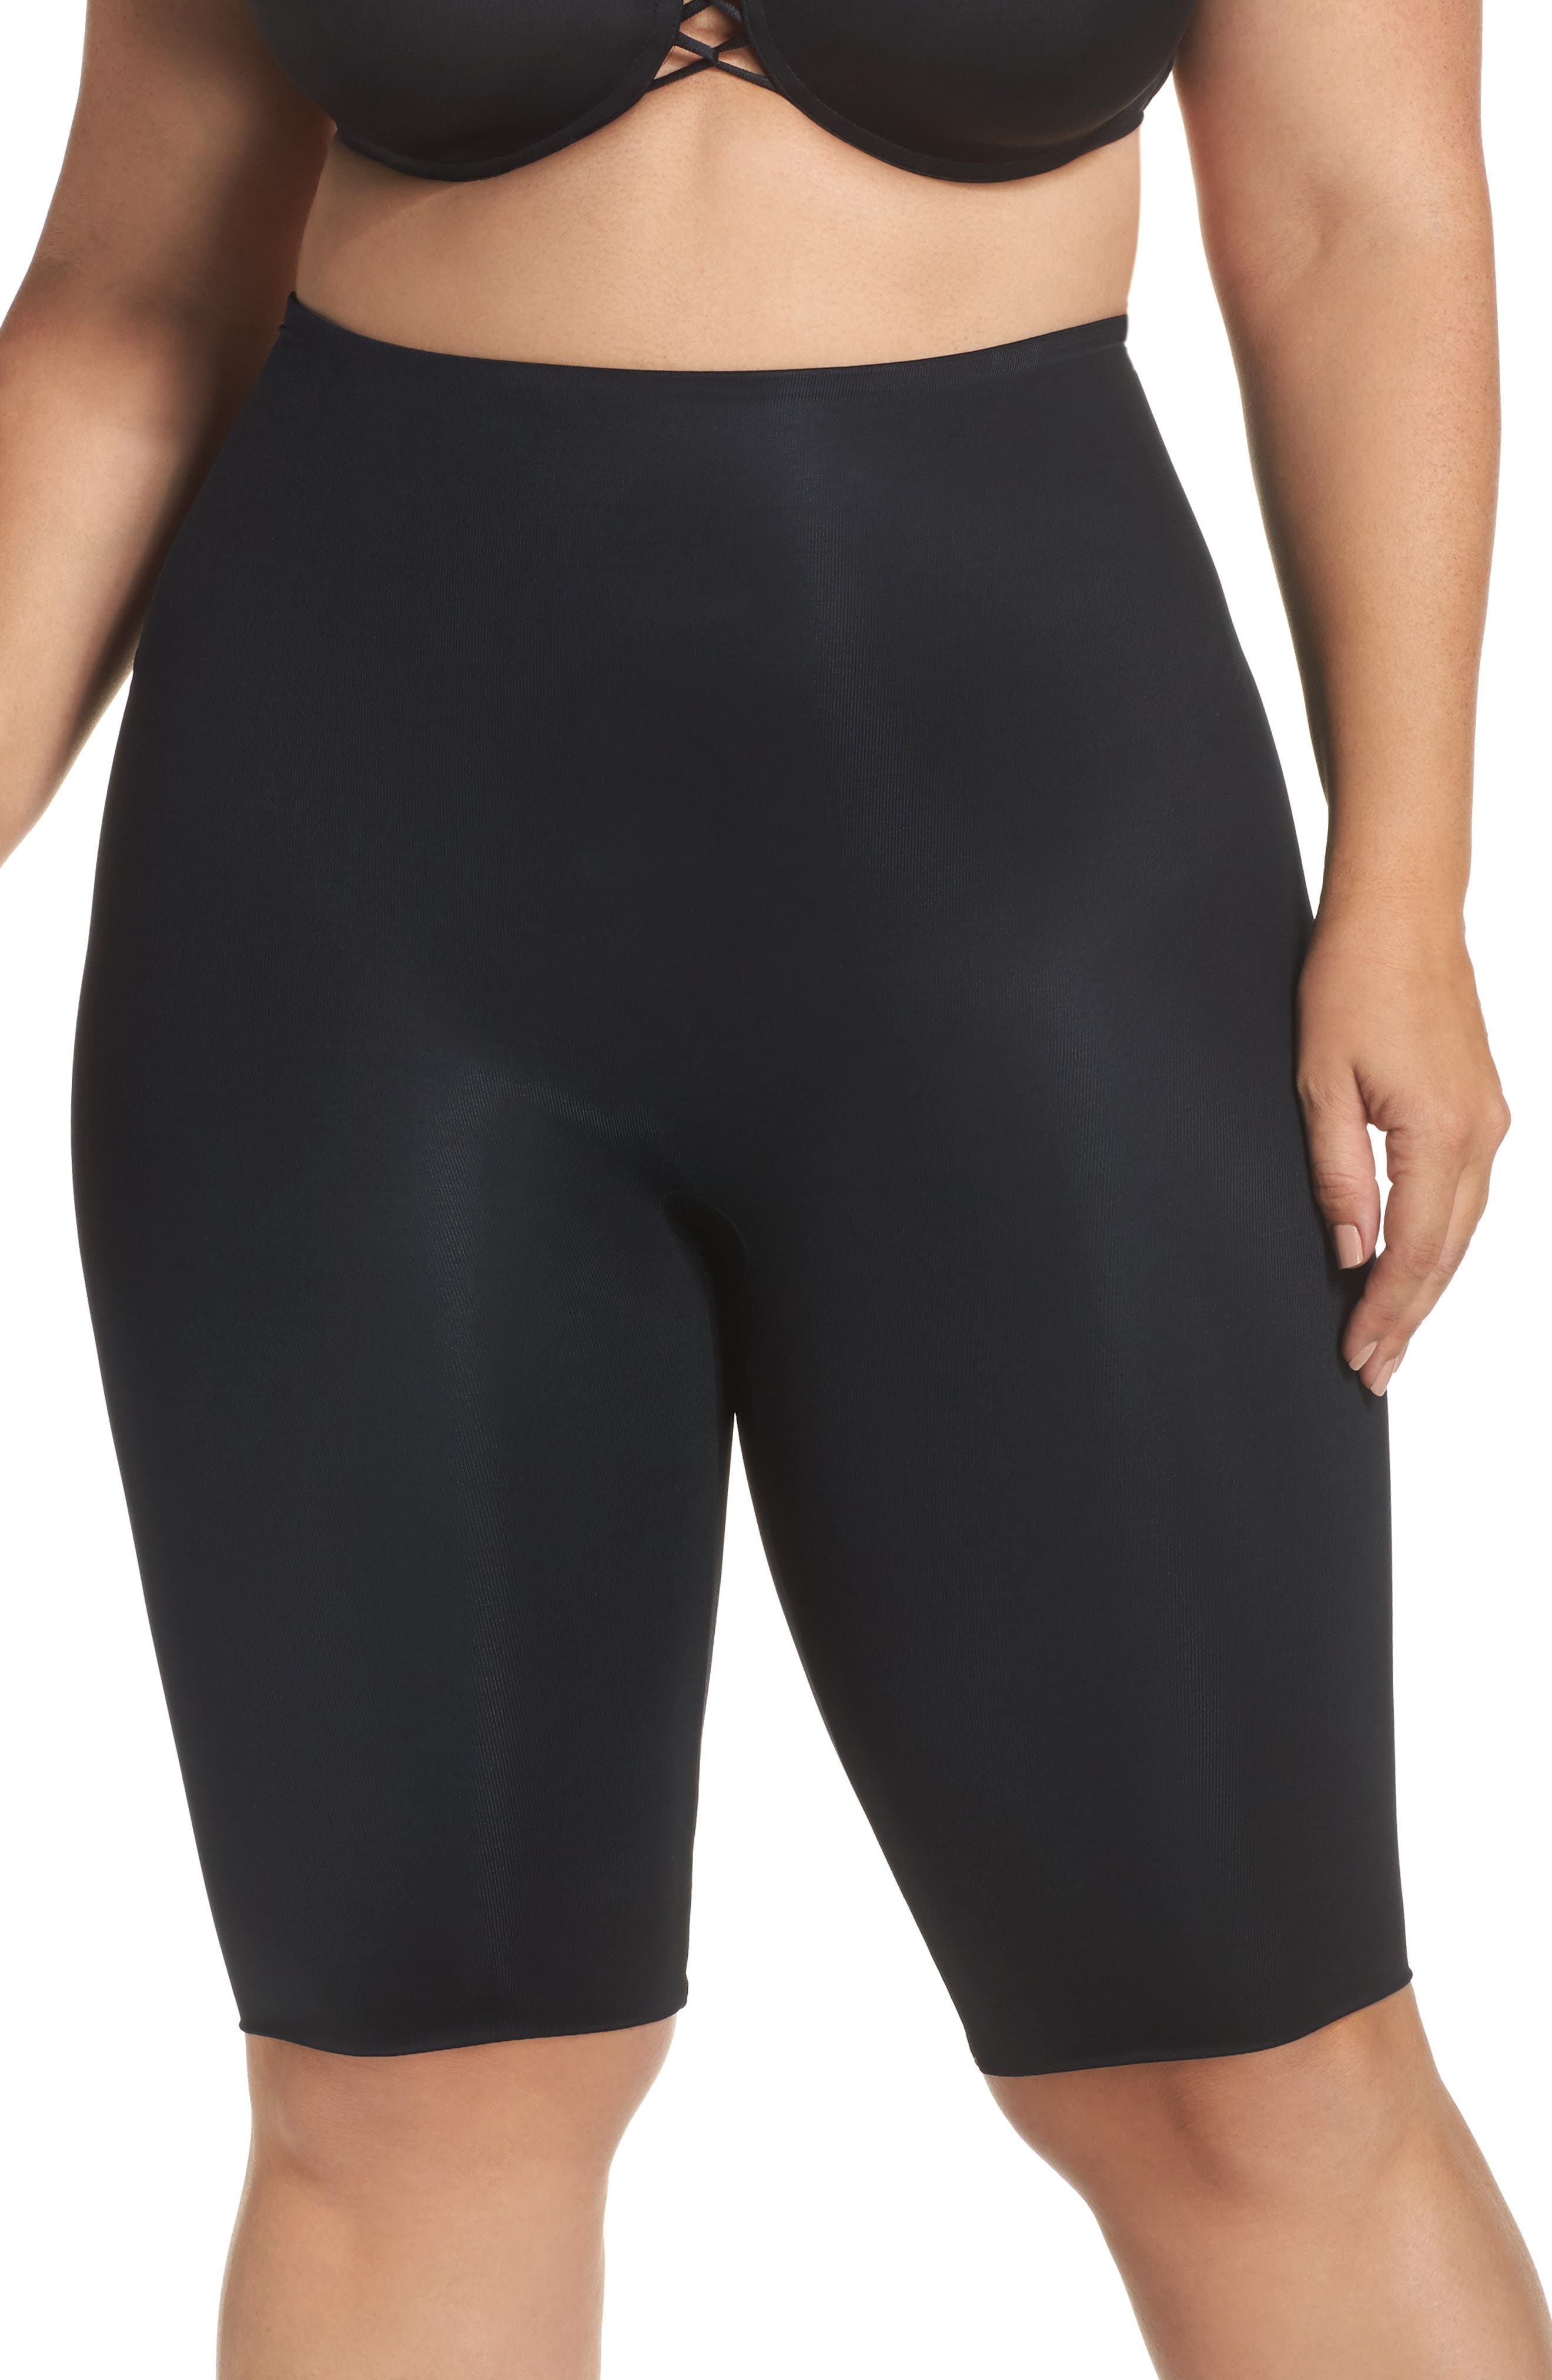 Power Conceal-Her Mid-Thigh Shorts,                             Main thumbnail 1, color,